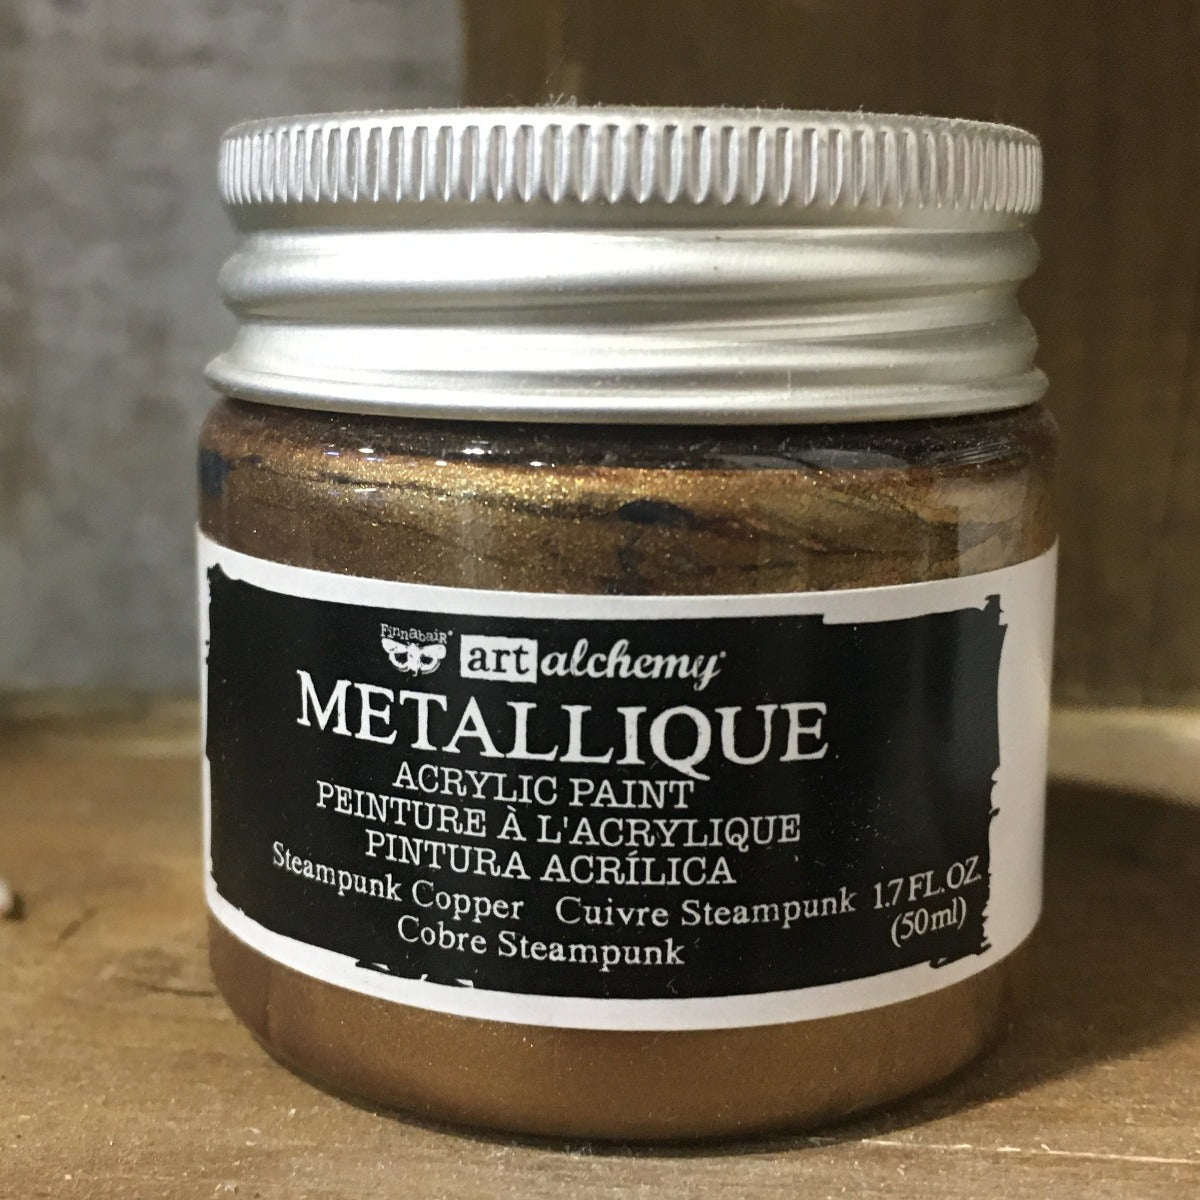 Metallic Acrylic Paints- Steampunk Copper